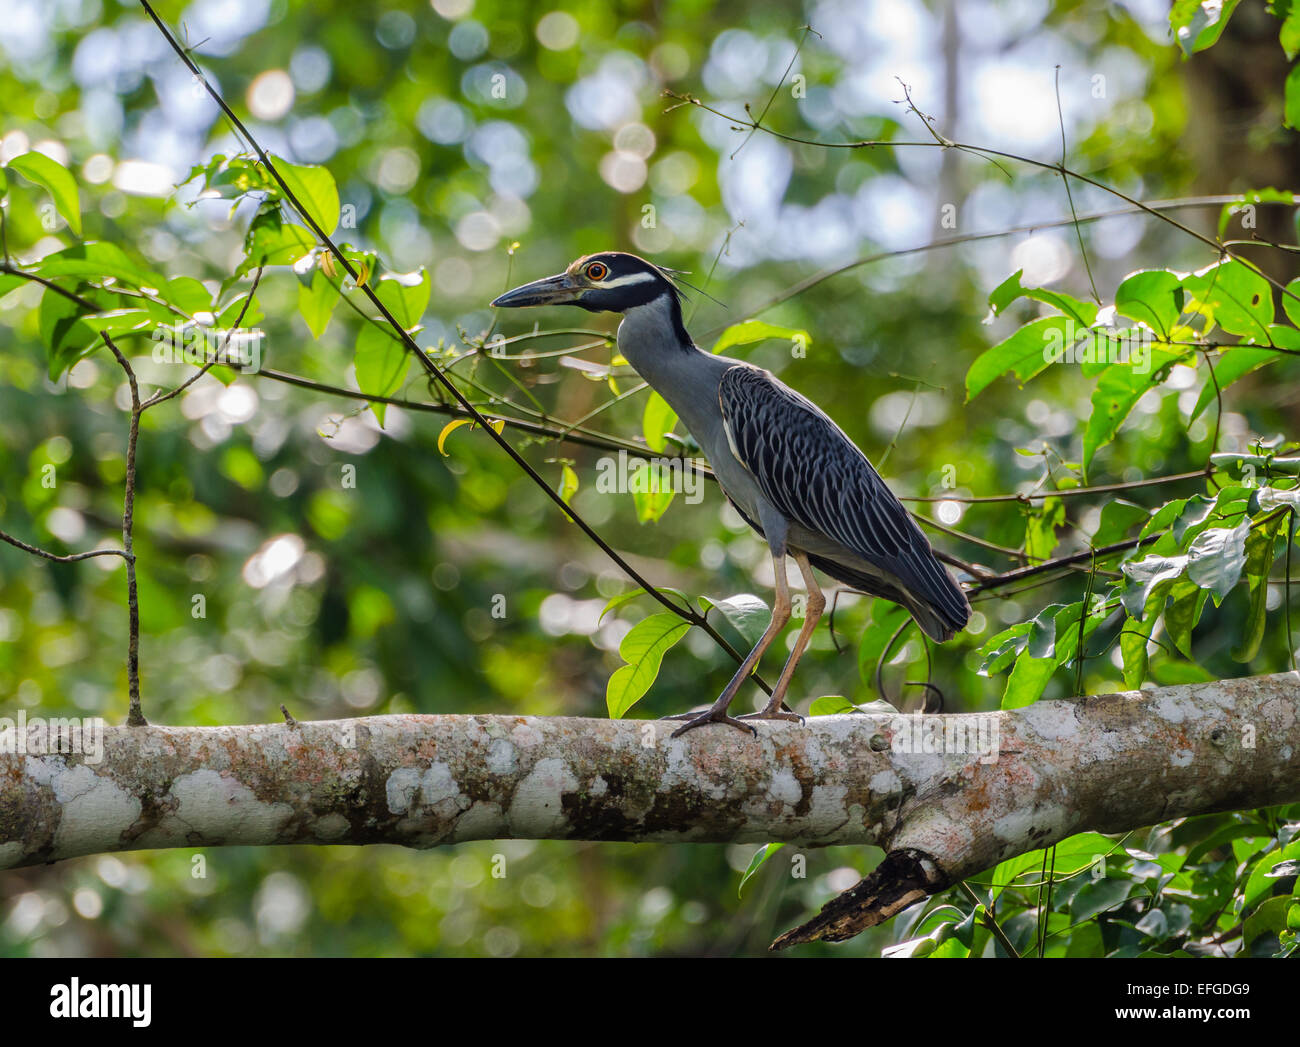 A Yellow-crowned Night-Heron (Nyctanassa violacea) on a tree. Belize, Central America. - Stock Image